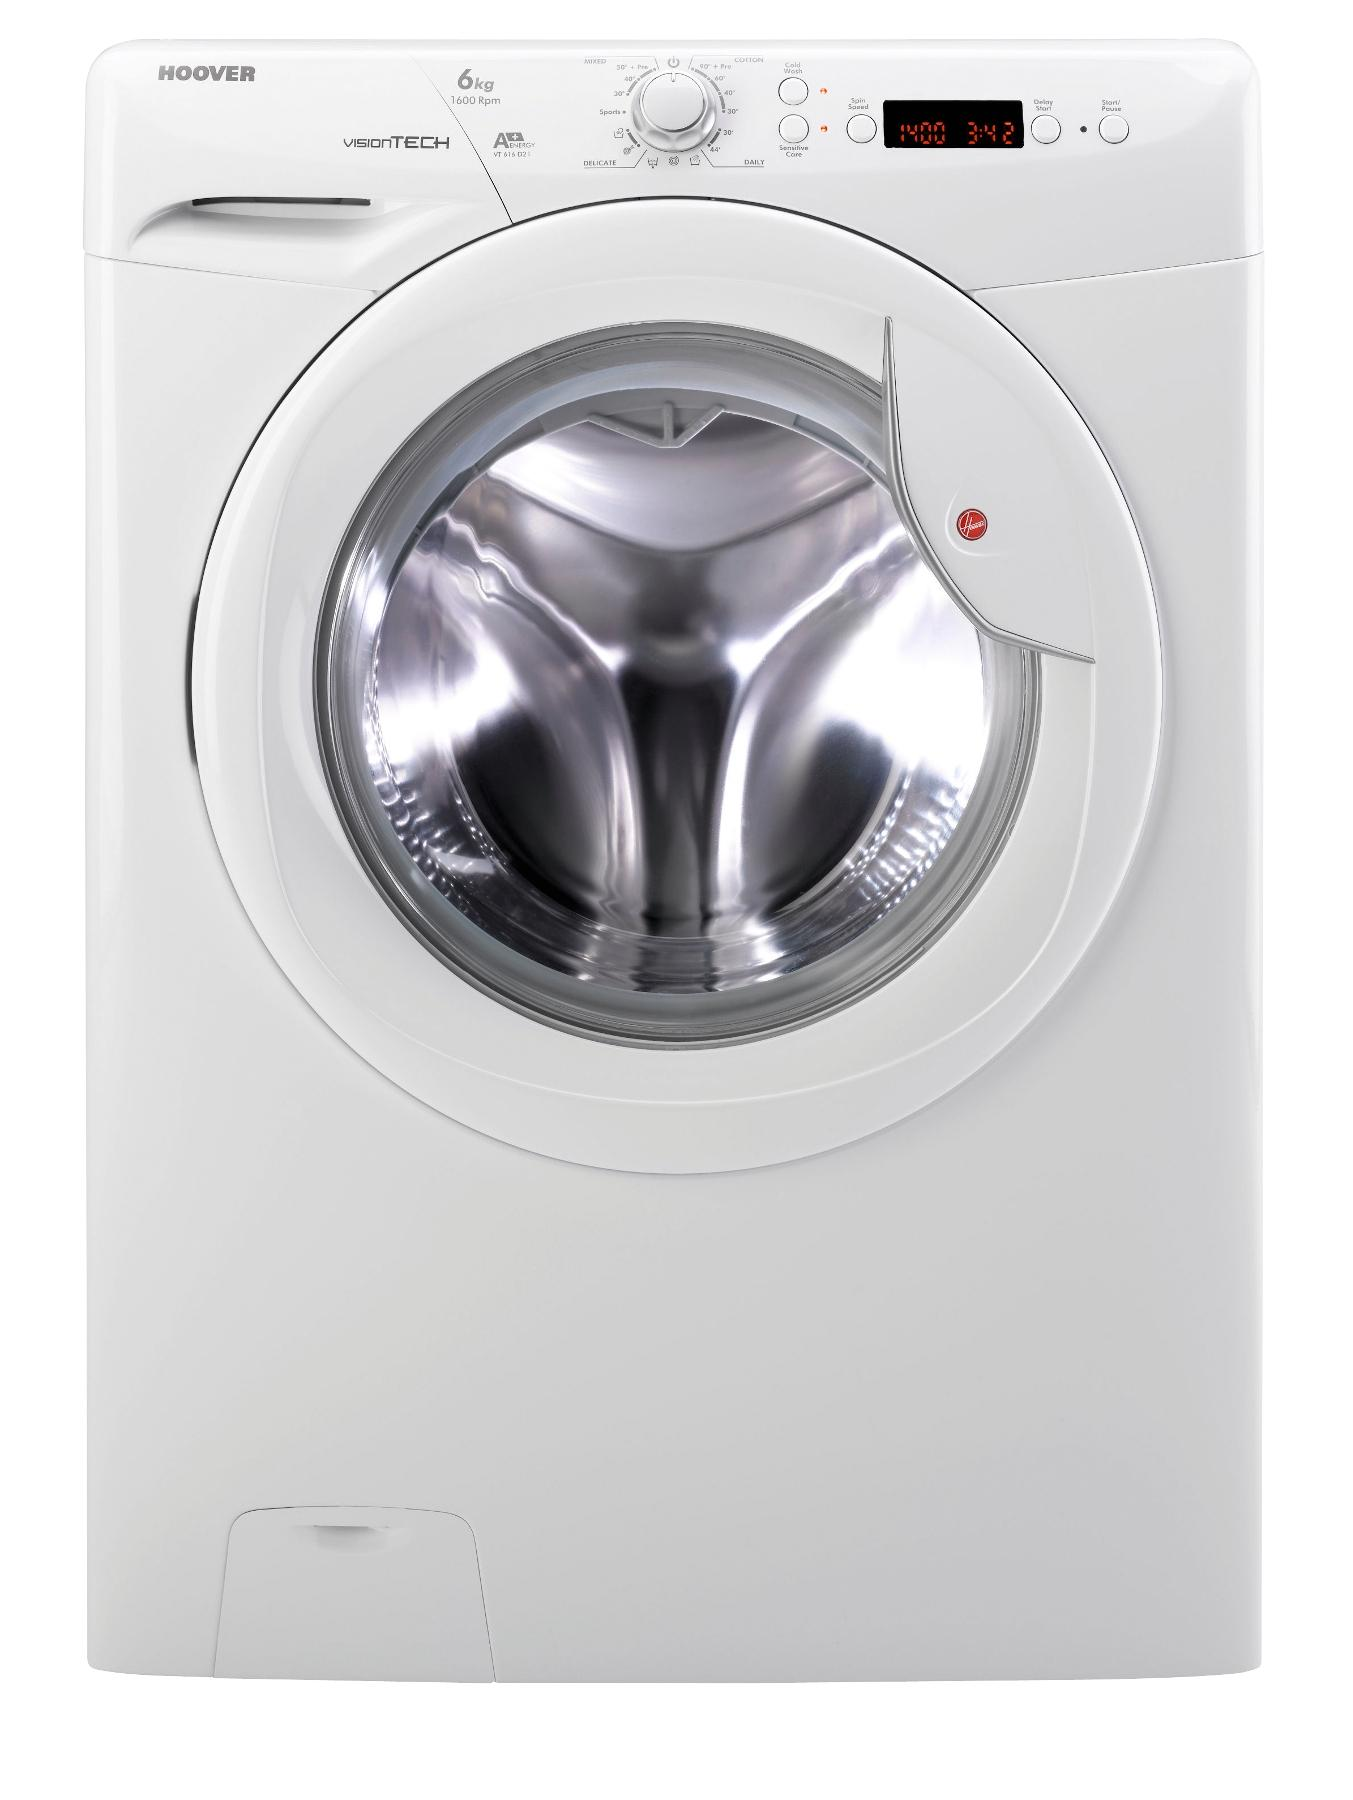 VTS616D21 1600 Spin, 6kg Load Washing Machine - White